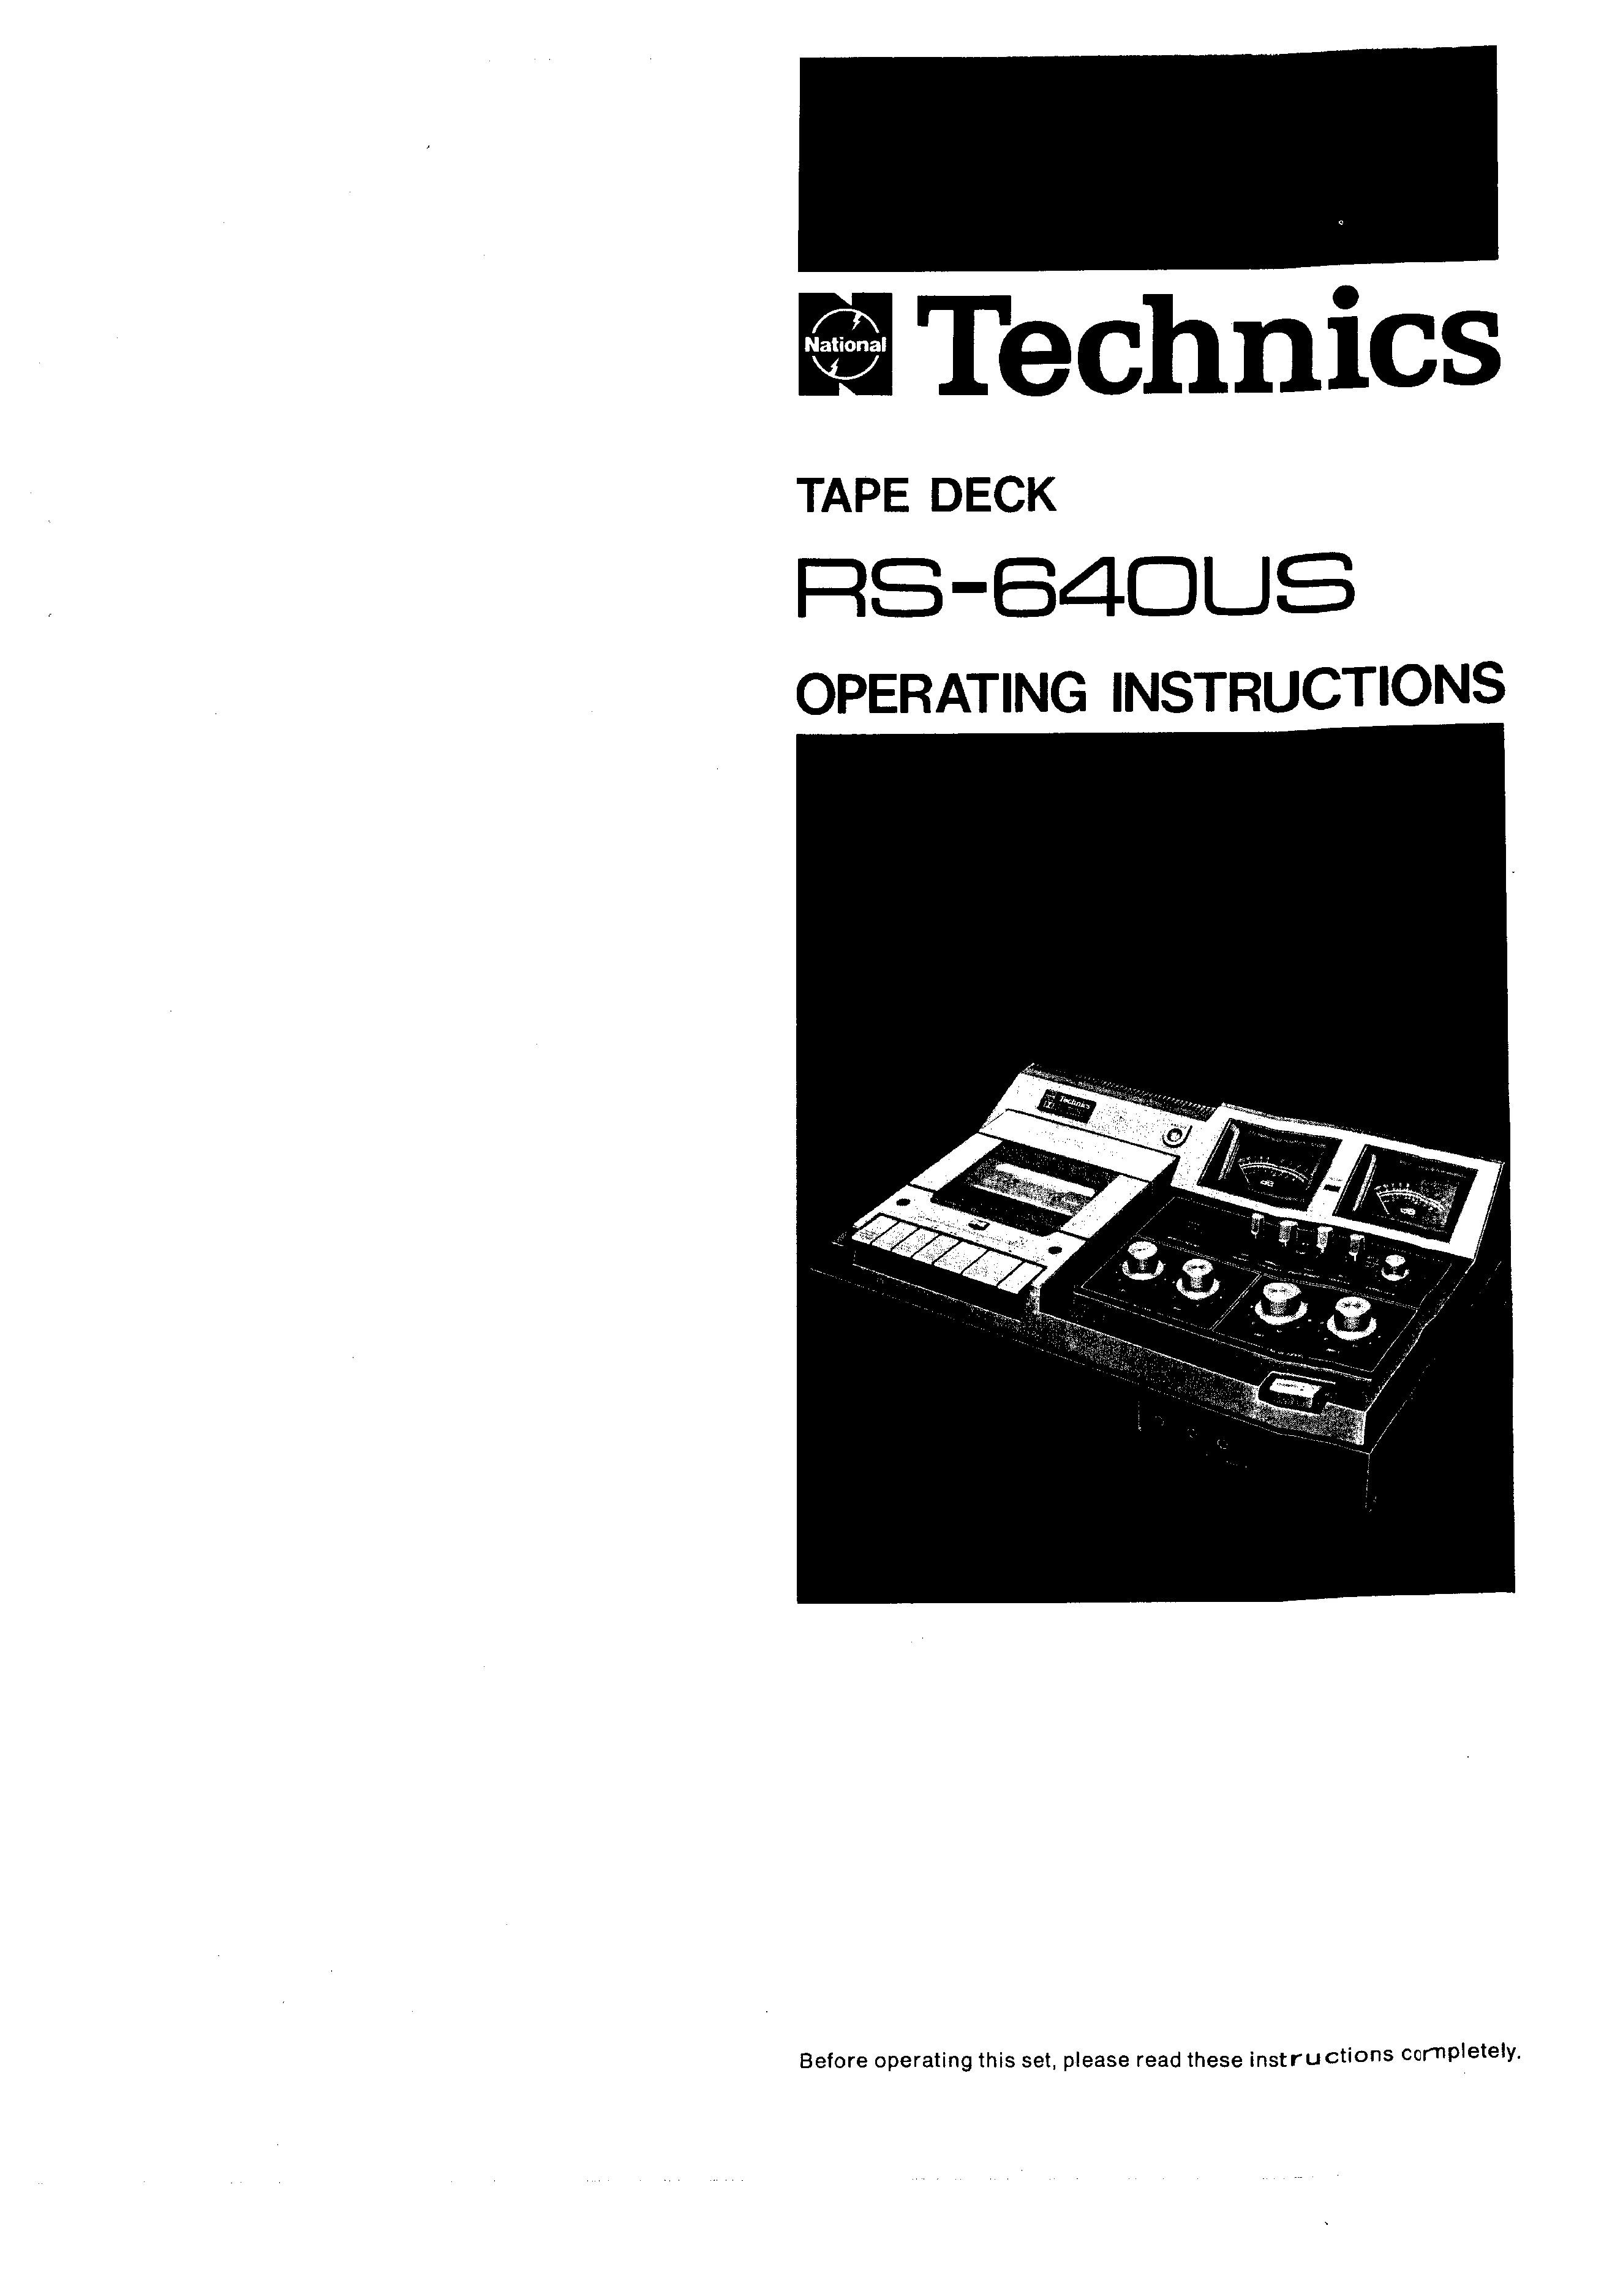 Owner's Manual for TECHNICS RS-640US - Download